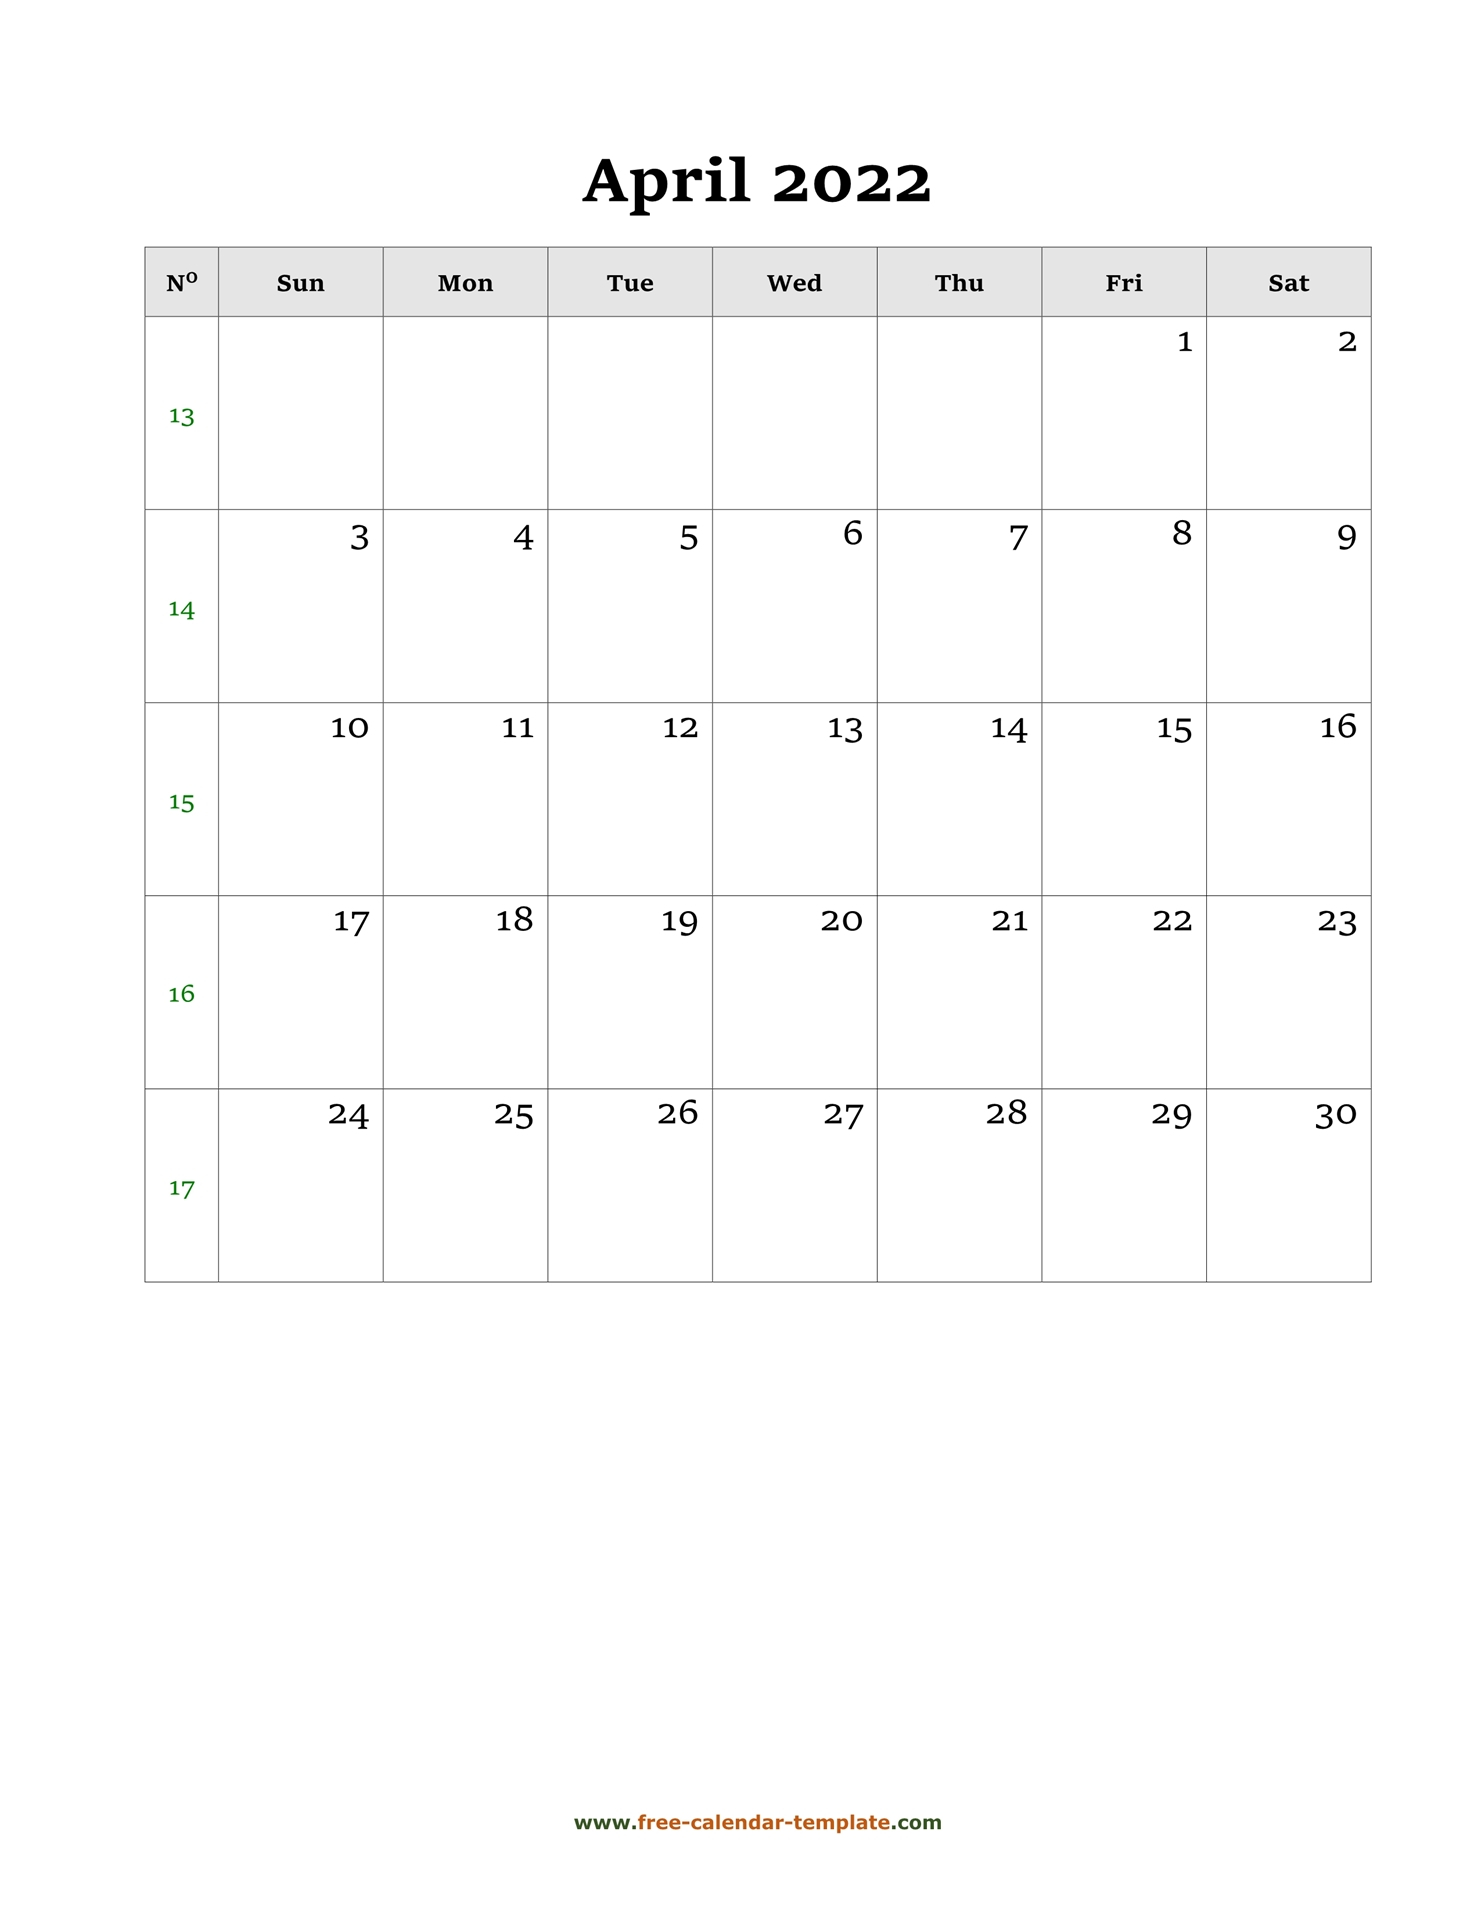 April Calendar 2022 Simple Design With Large Box On Each Pertaining To March April 2022 Calendar Free Printable